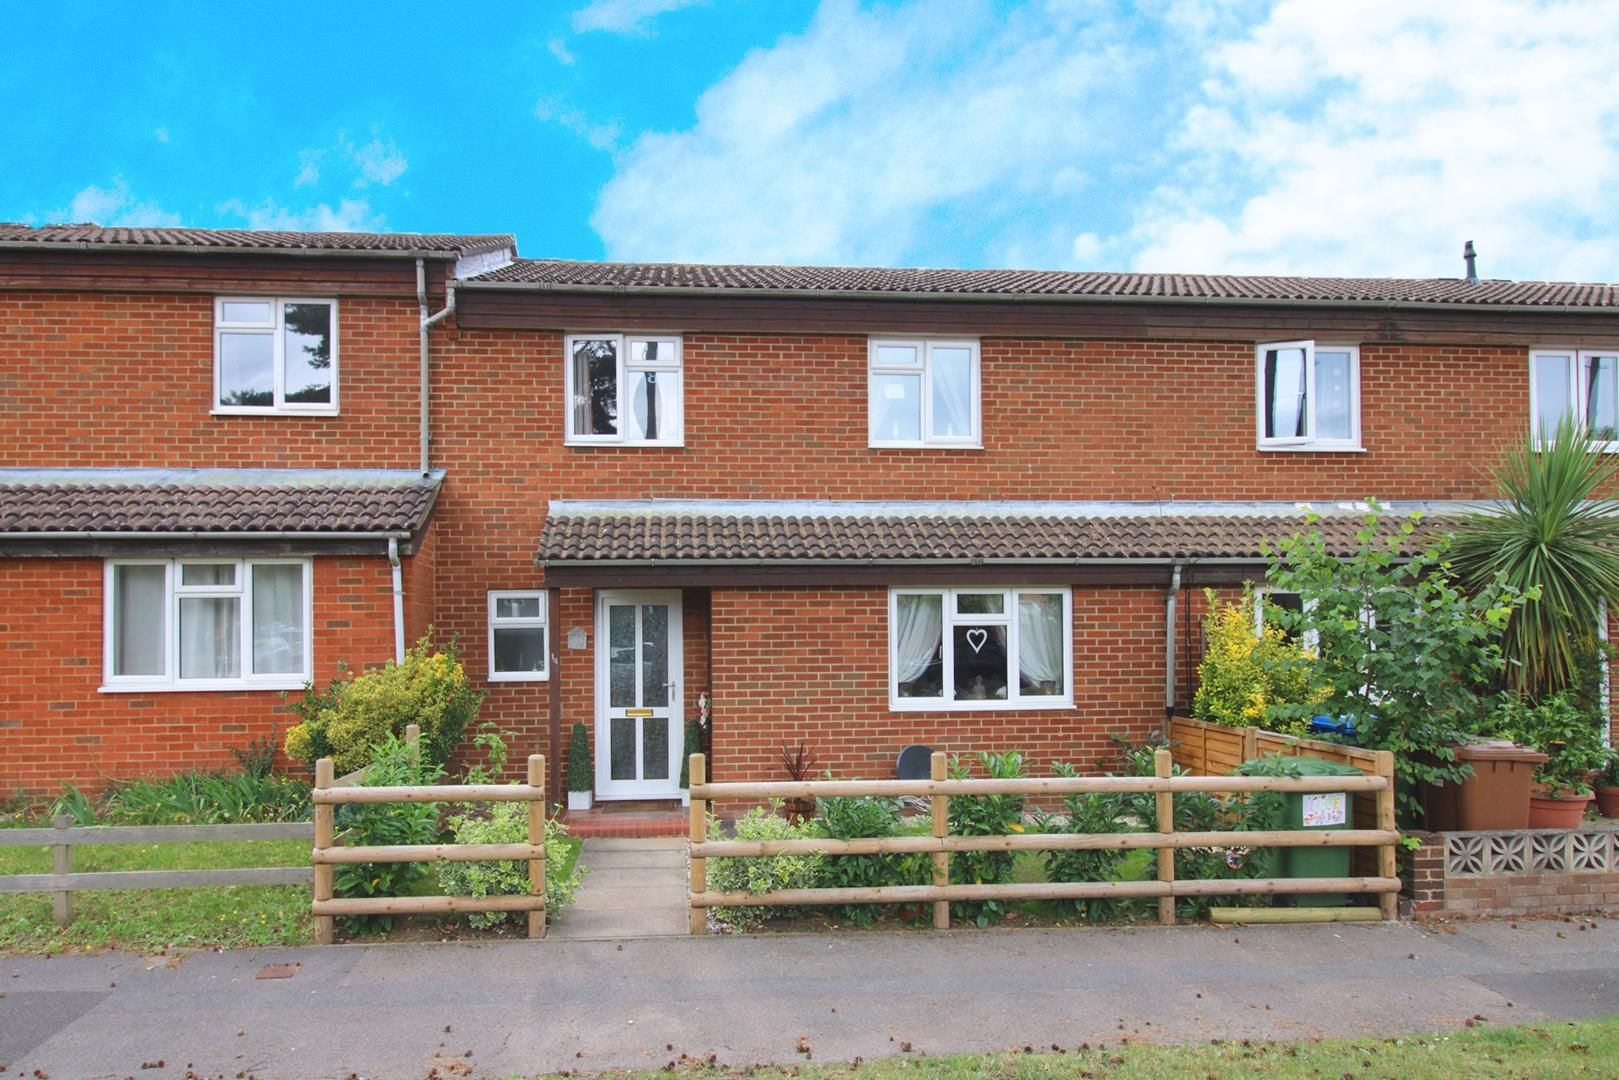 3 bed house for sale in Crown Wood 1